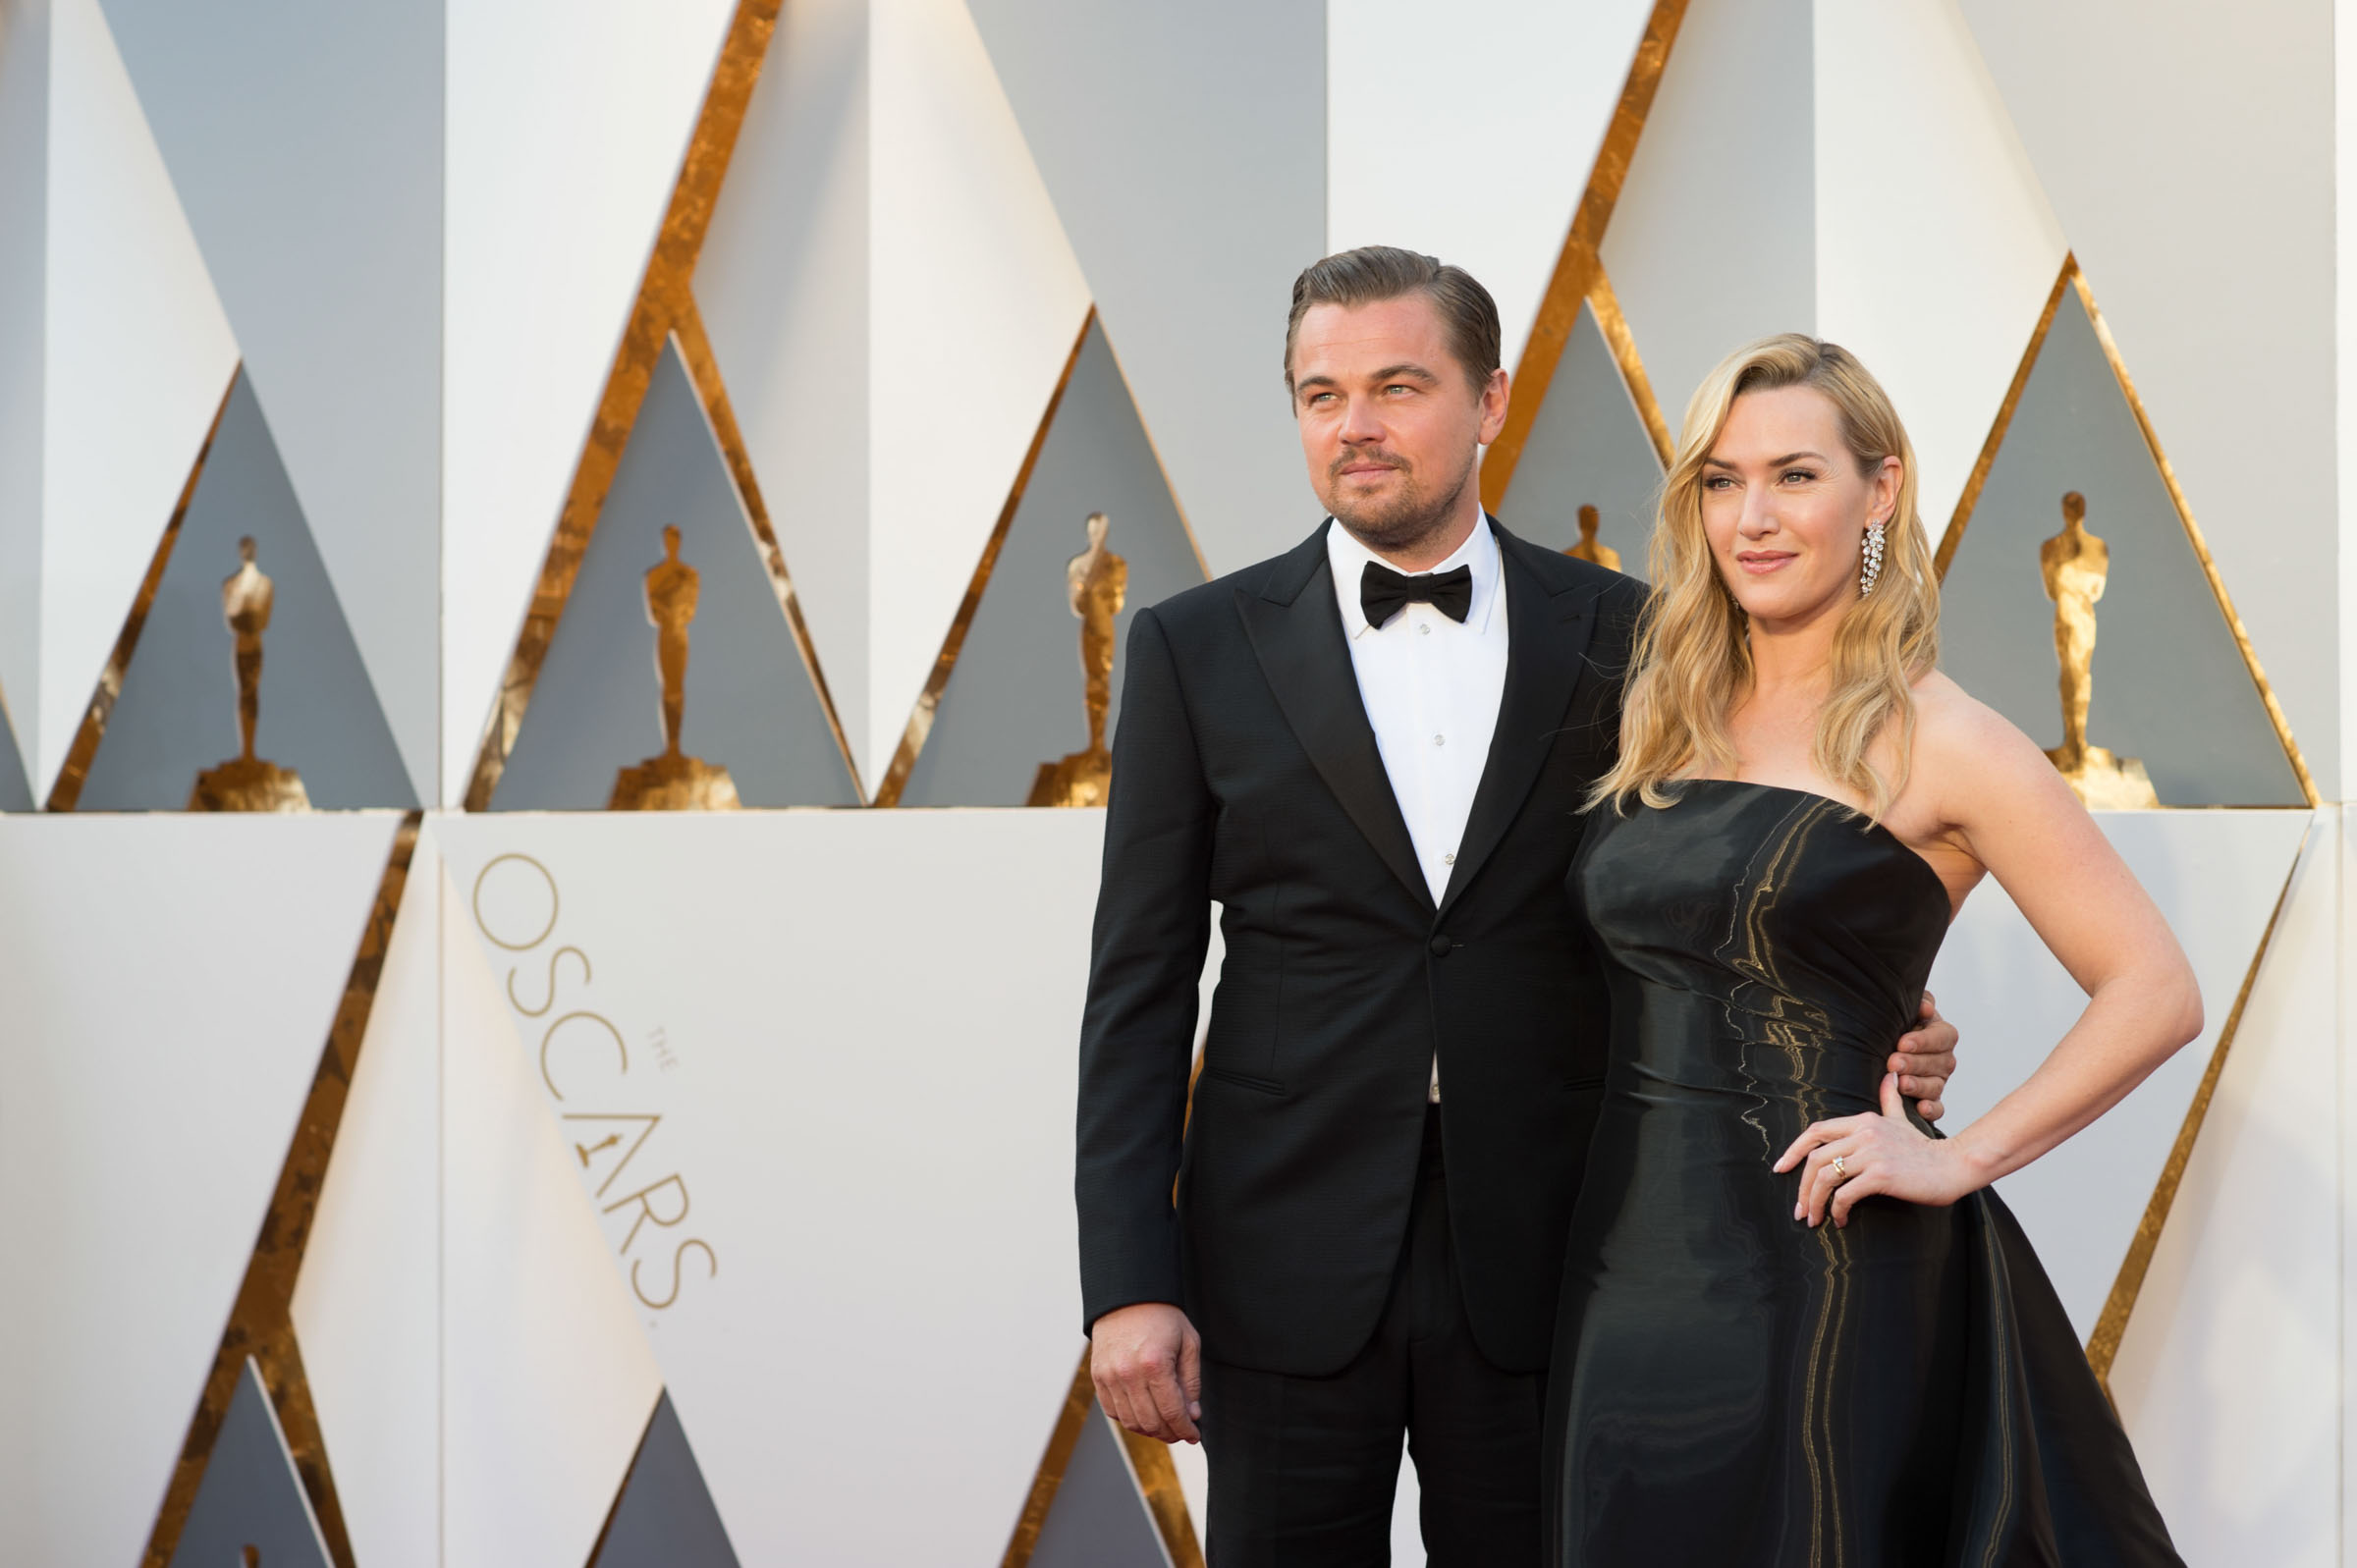 Oscar®-nominees Leonardo DiCaprio and Kate Winslet arrive at The 88th Oscars® at the Dolby® Theatre in Hollywood, CA on Sunday, February 28, 2016. Photo Credit: Aaron Poole / ©A.M.P.A.S.